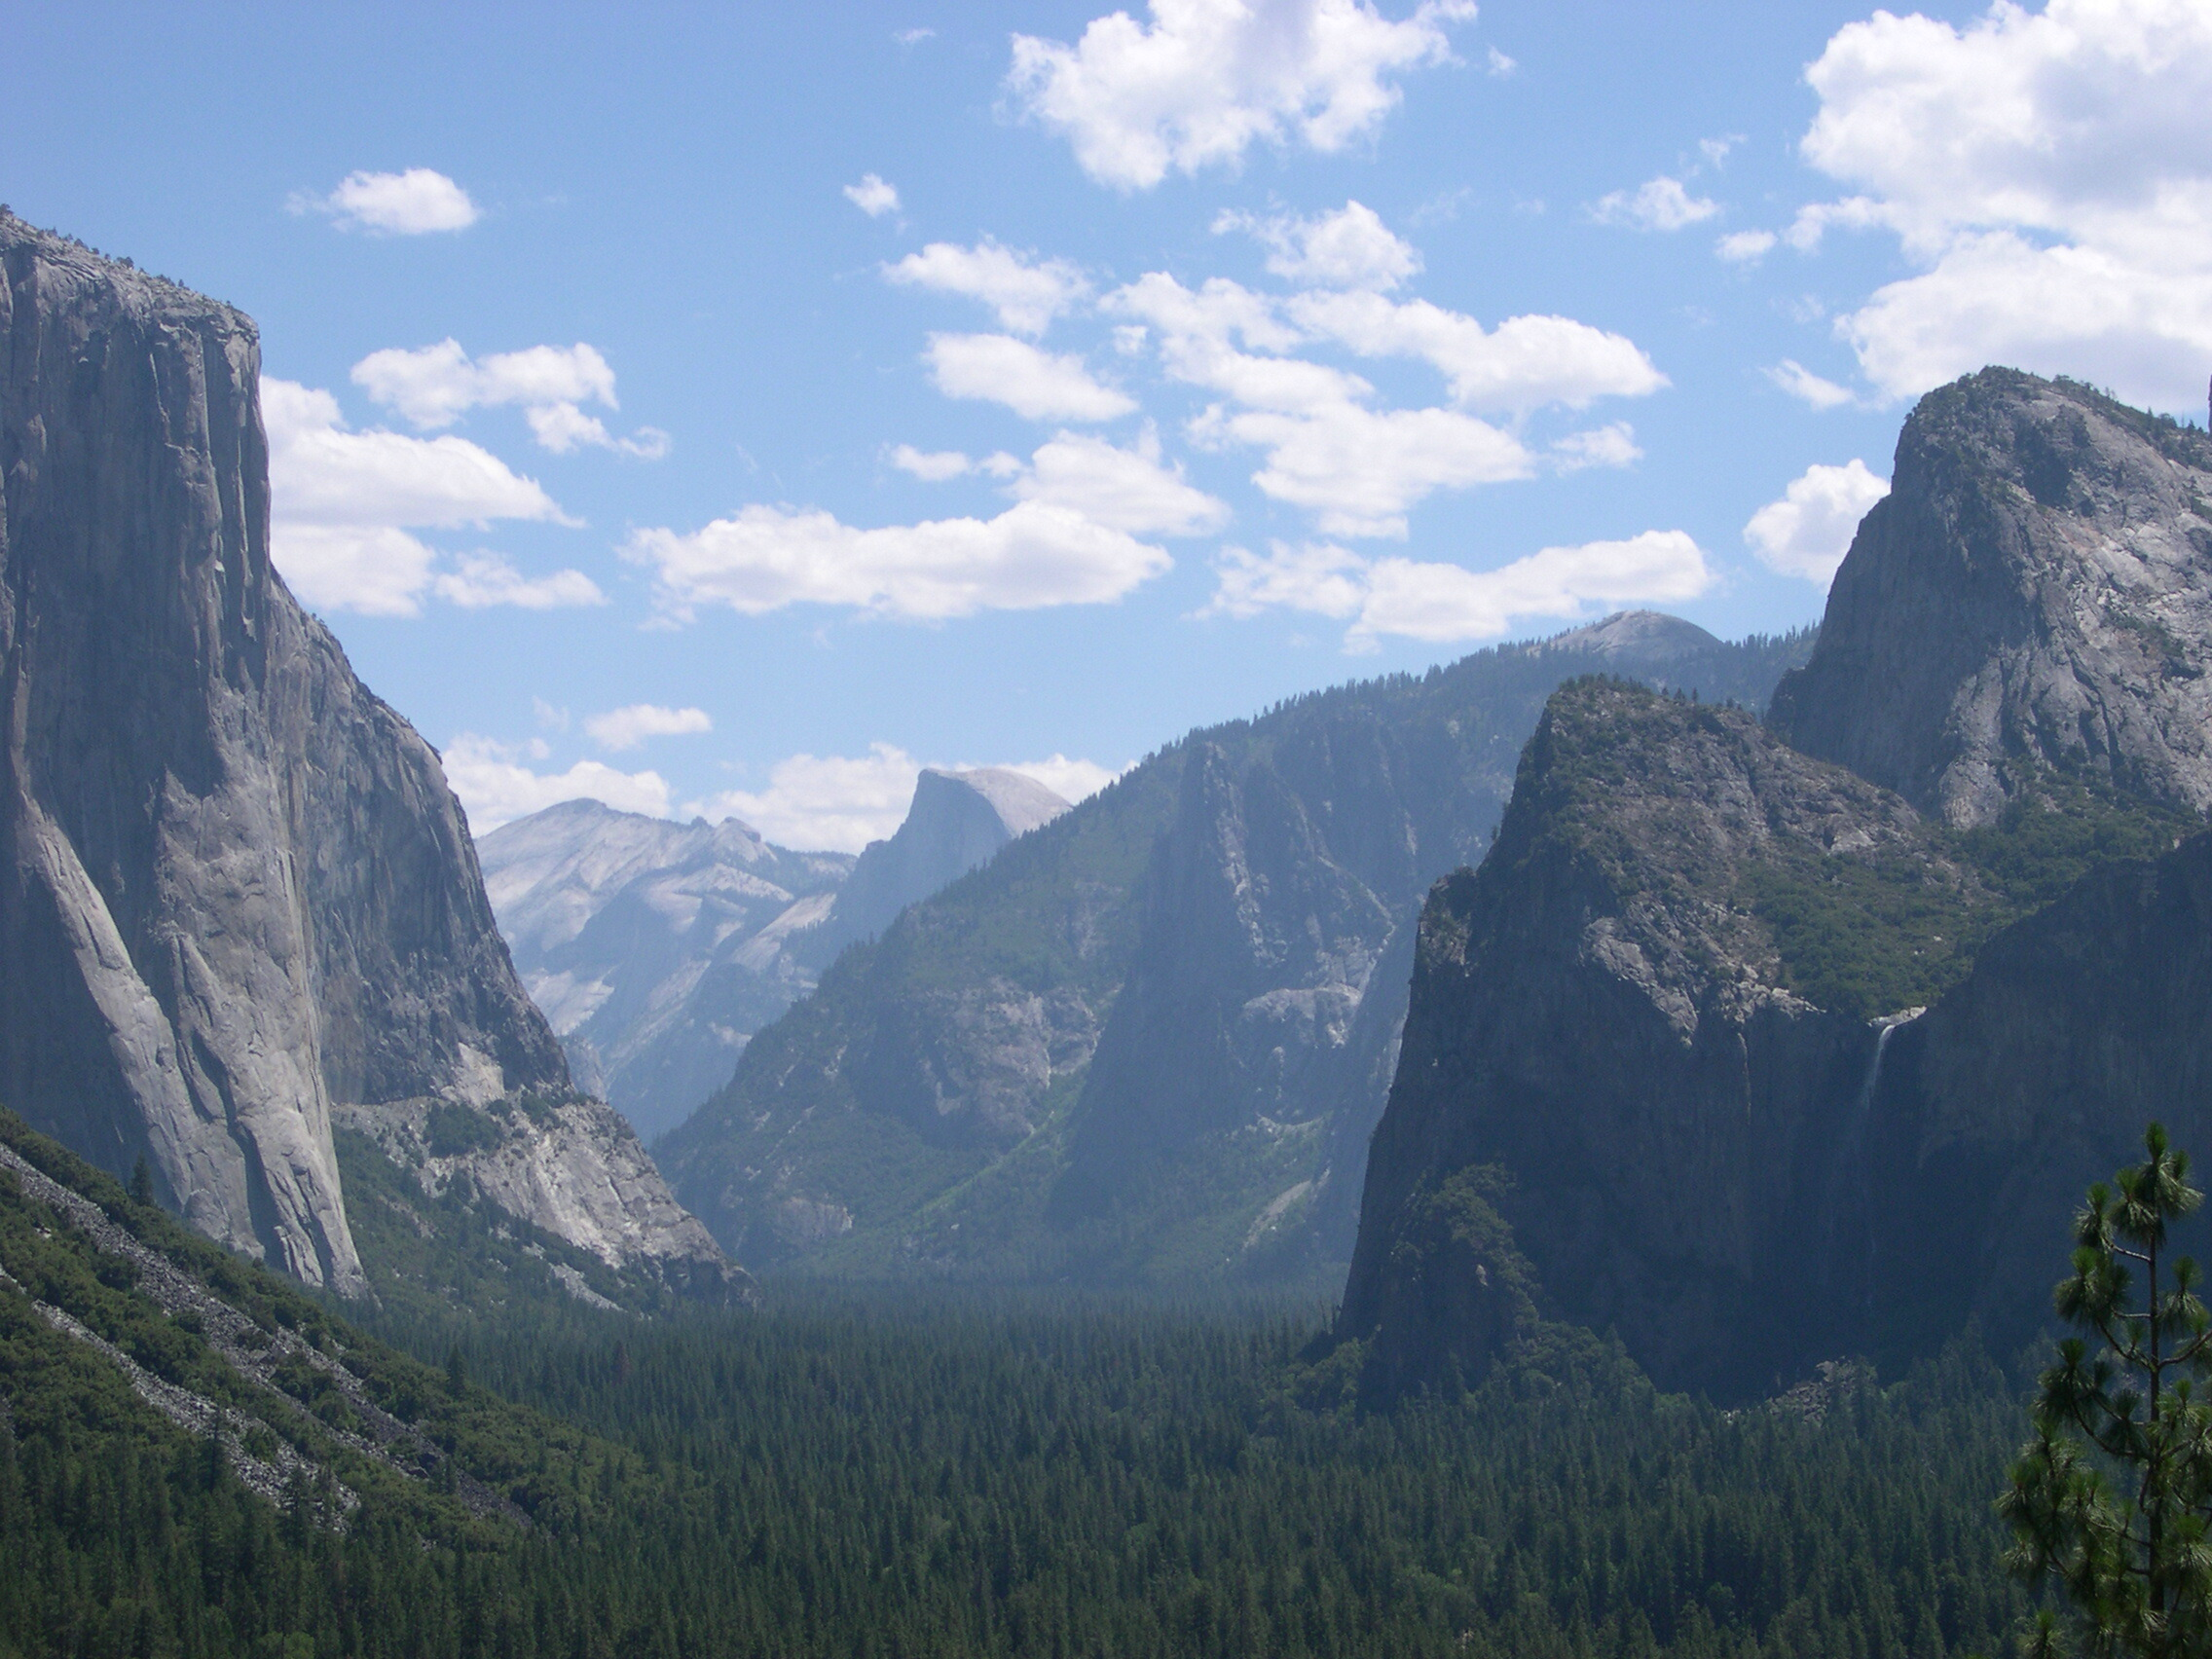 Looking Eastward Up Yosemite